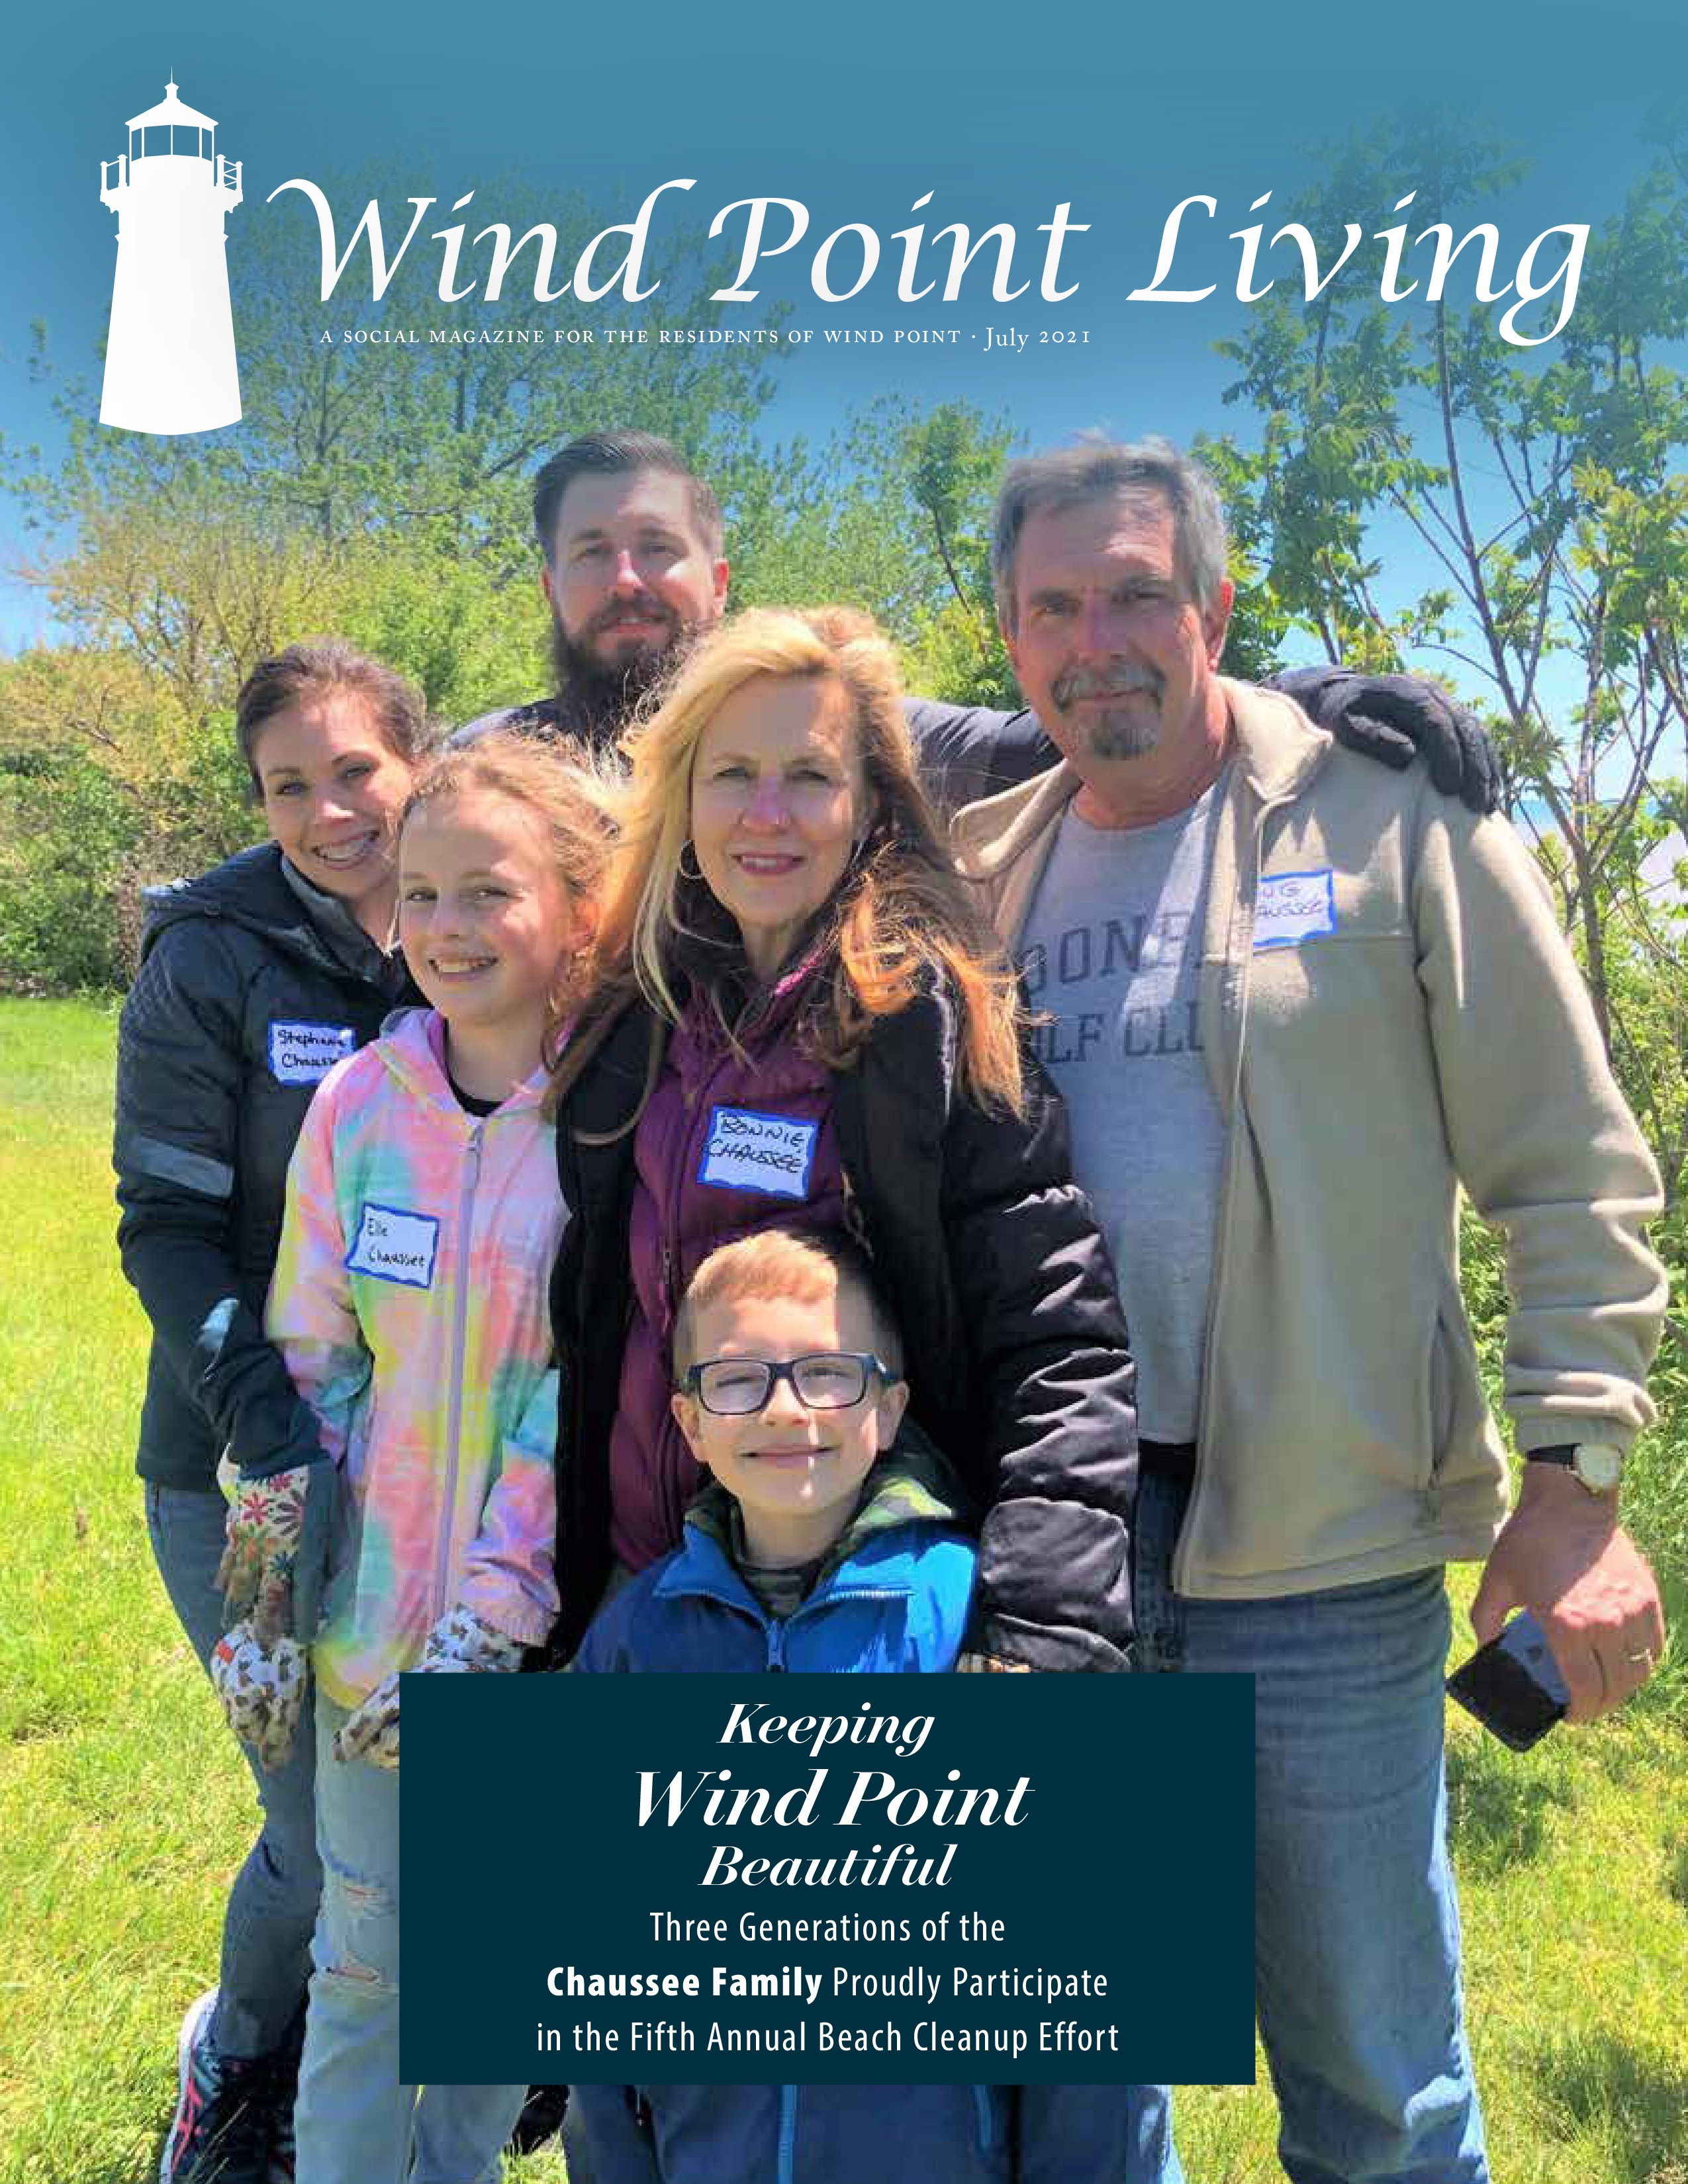 Wind Point Living 2021-07-01